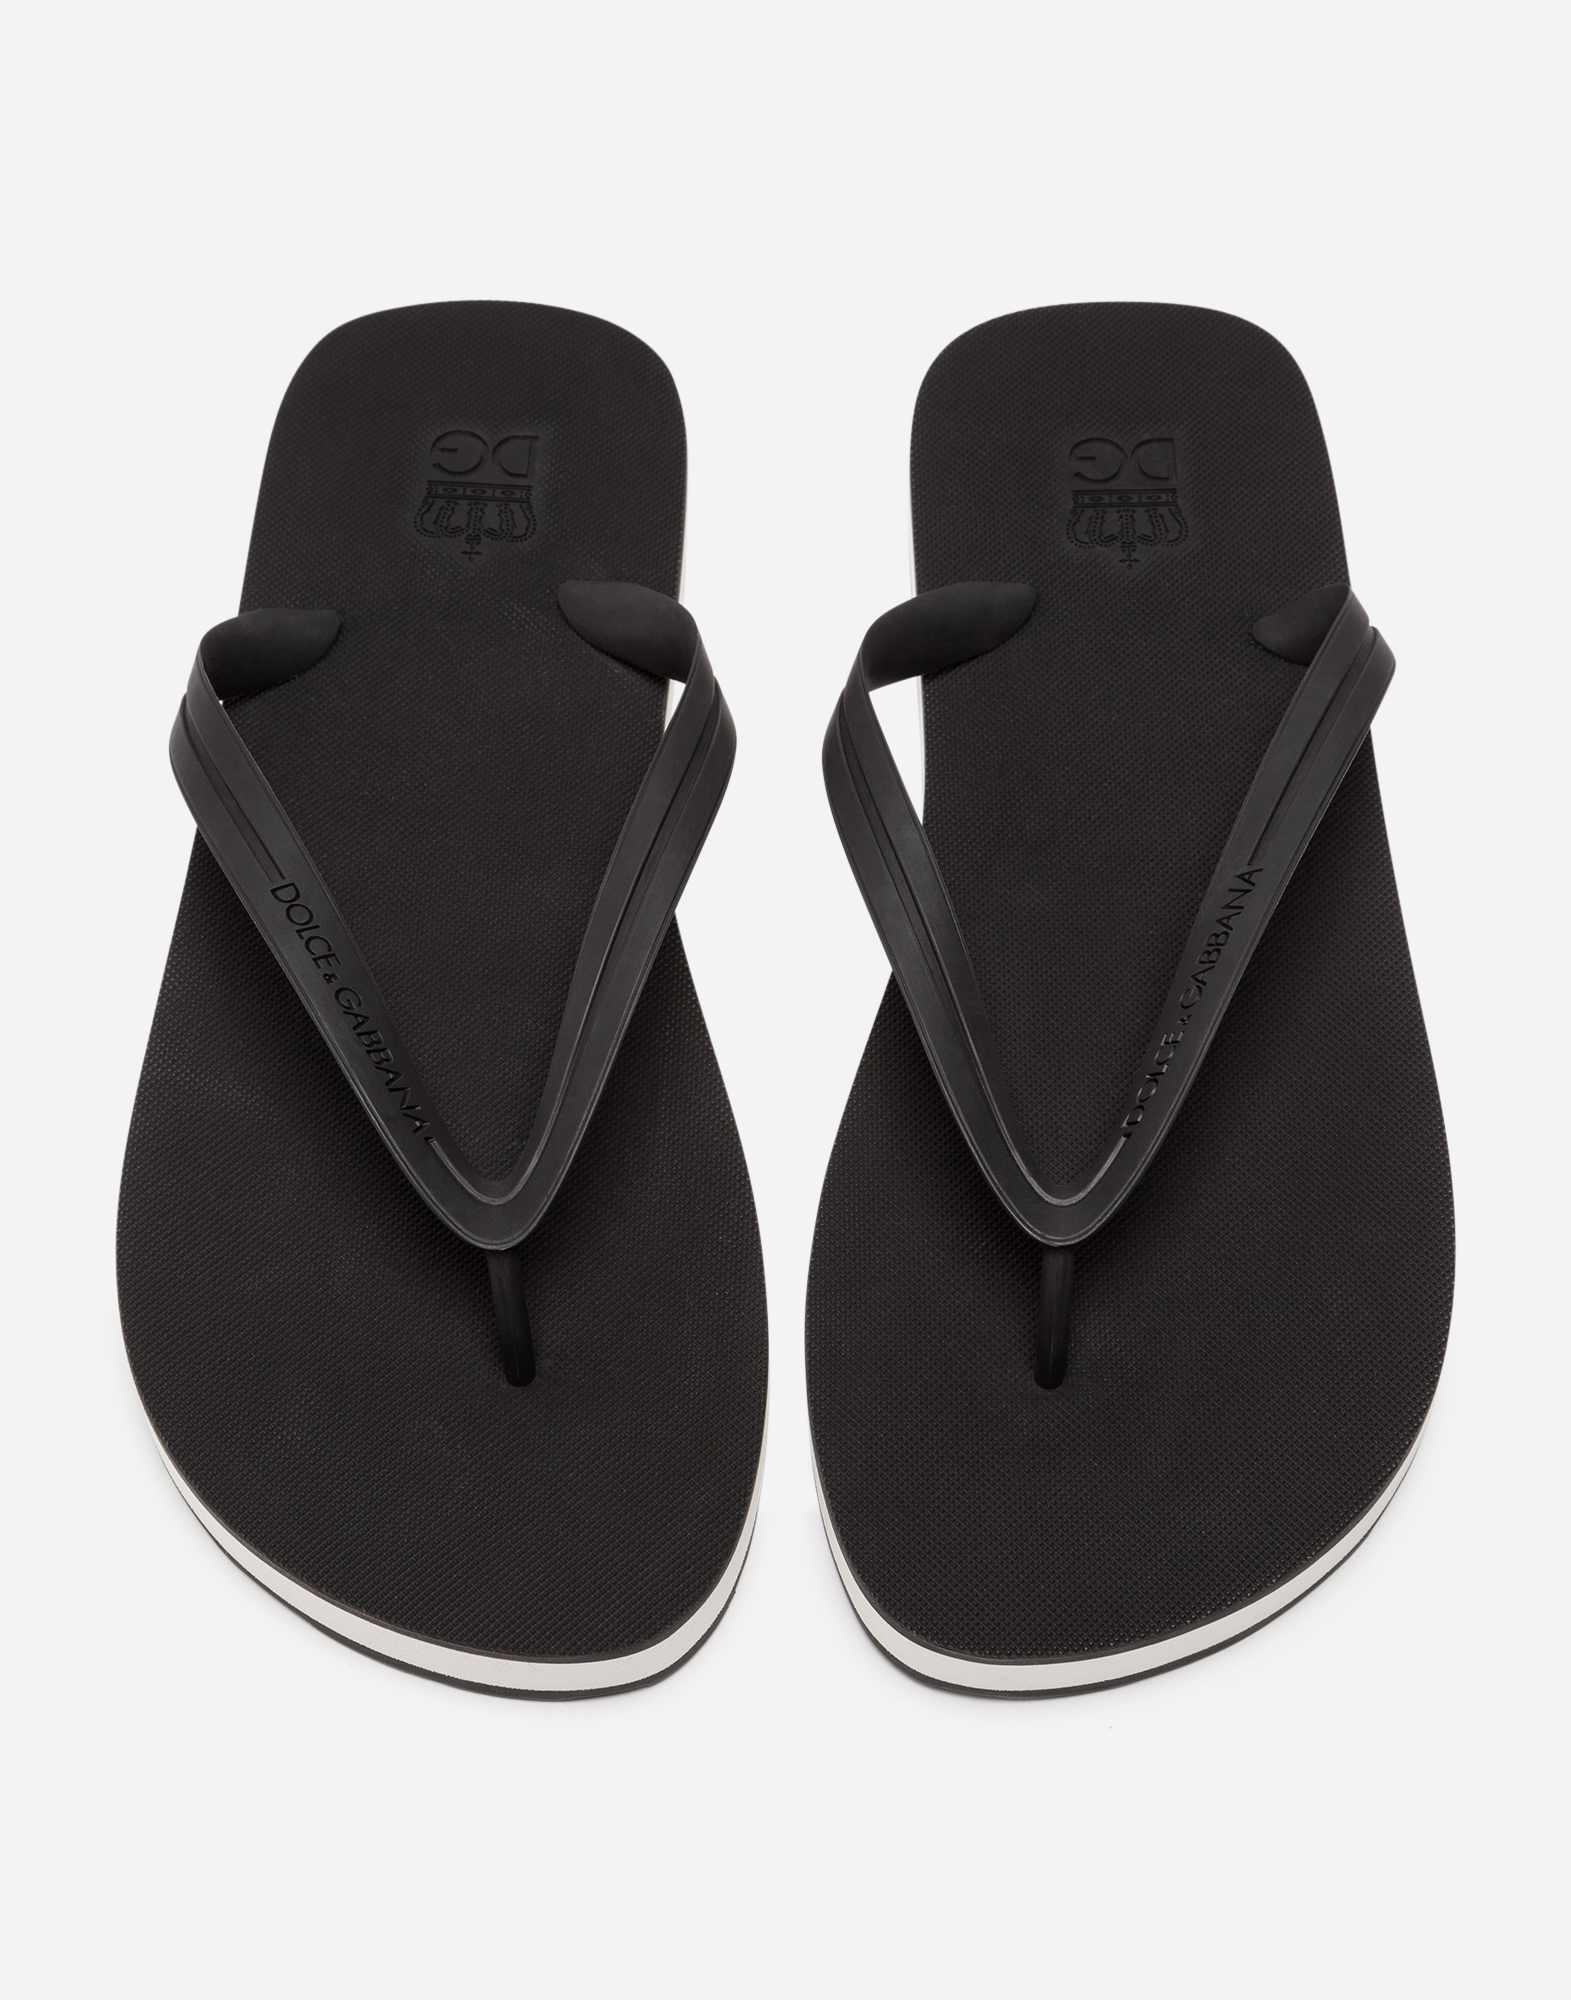 RUBBER THONG SANDALS